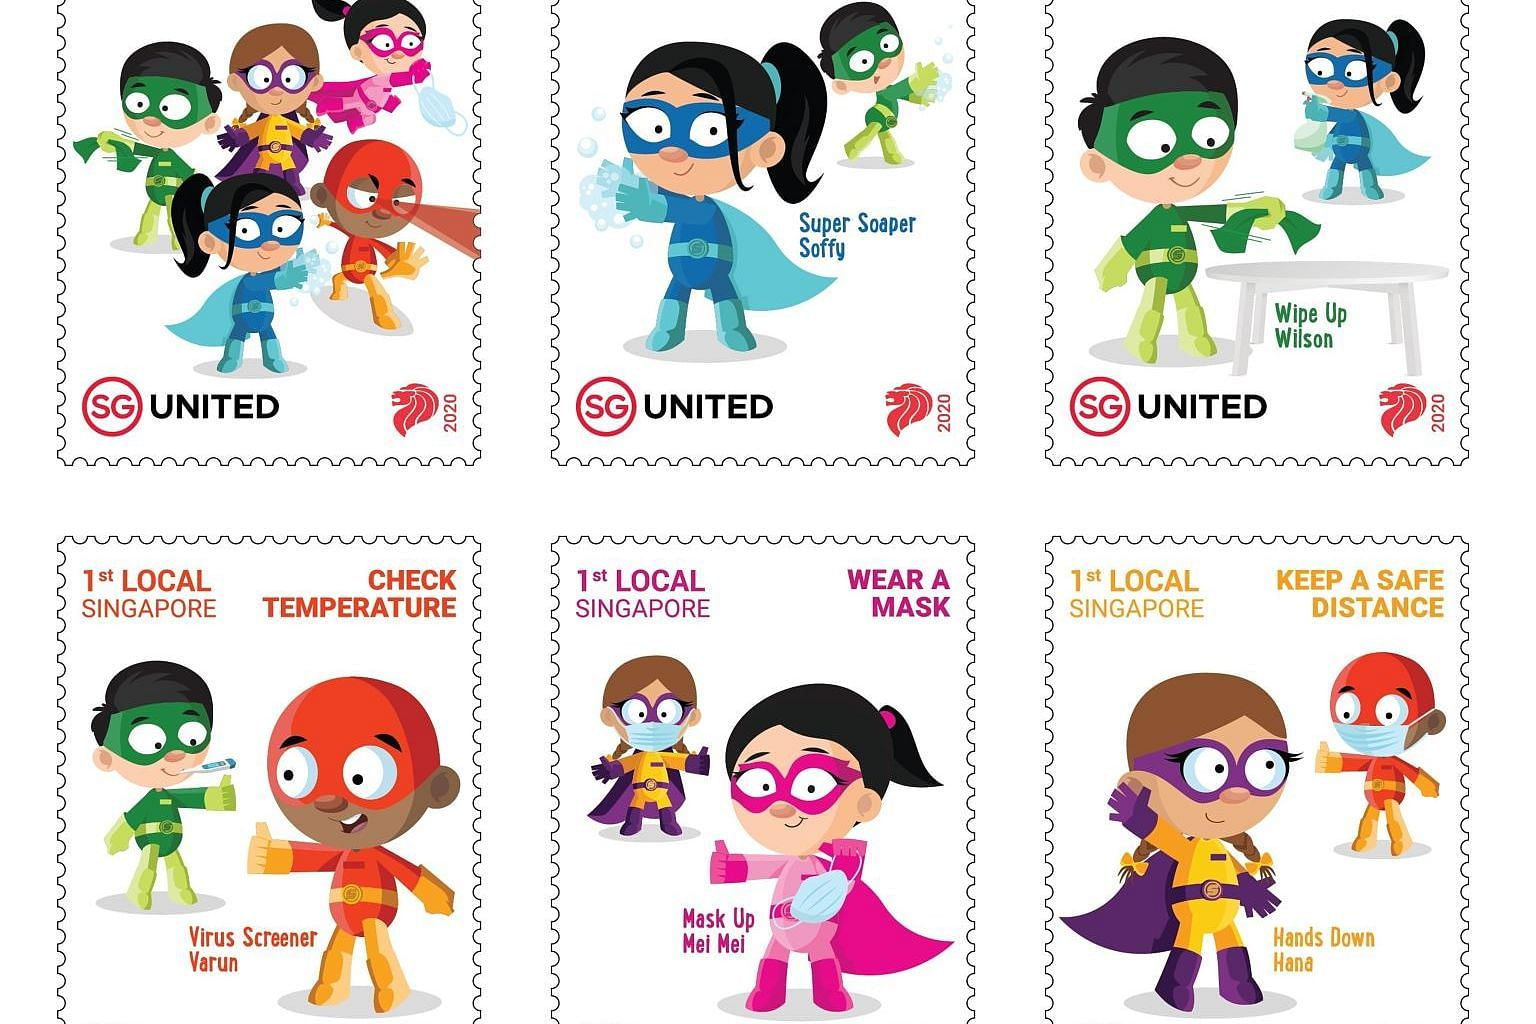 The set of six superhero-themed stamps, released as part of a tie-up between SingPost and MOE in tribute to members of the education fraternity for their hard work in ensuring a safe learning environment amid the pandemic.